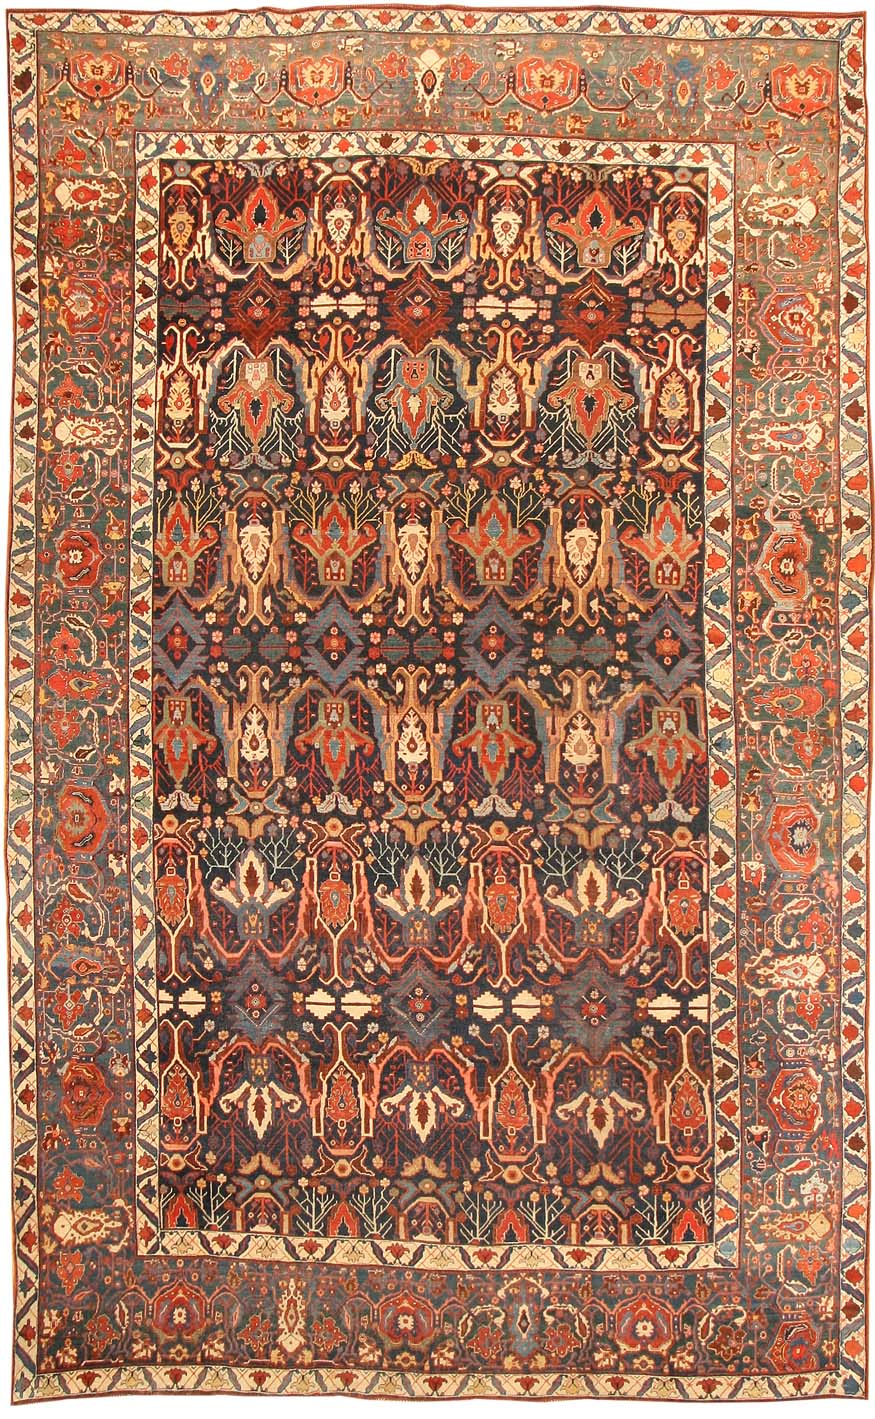 Polonaise antique oriental rugs - Bijar Iran July 15 2012 When One Thinks Of Persian Carpets One Usually Thinks Of Two Ends Of A Spectrum